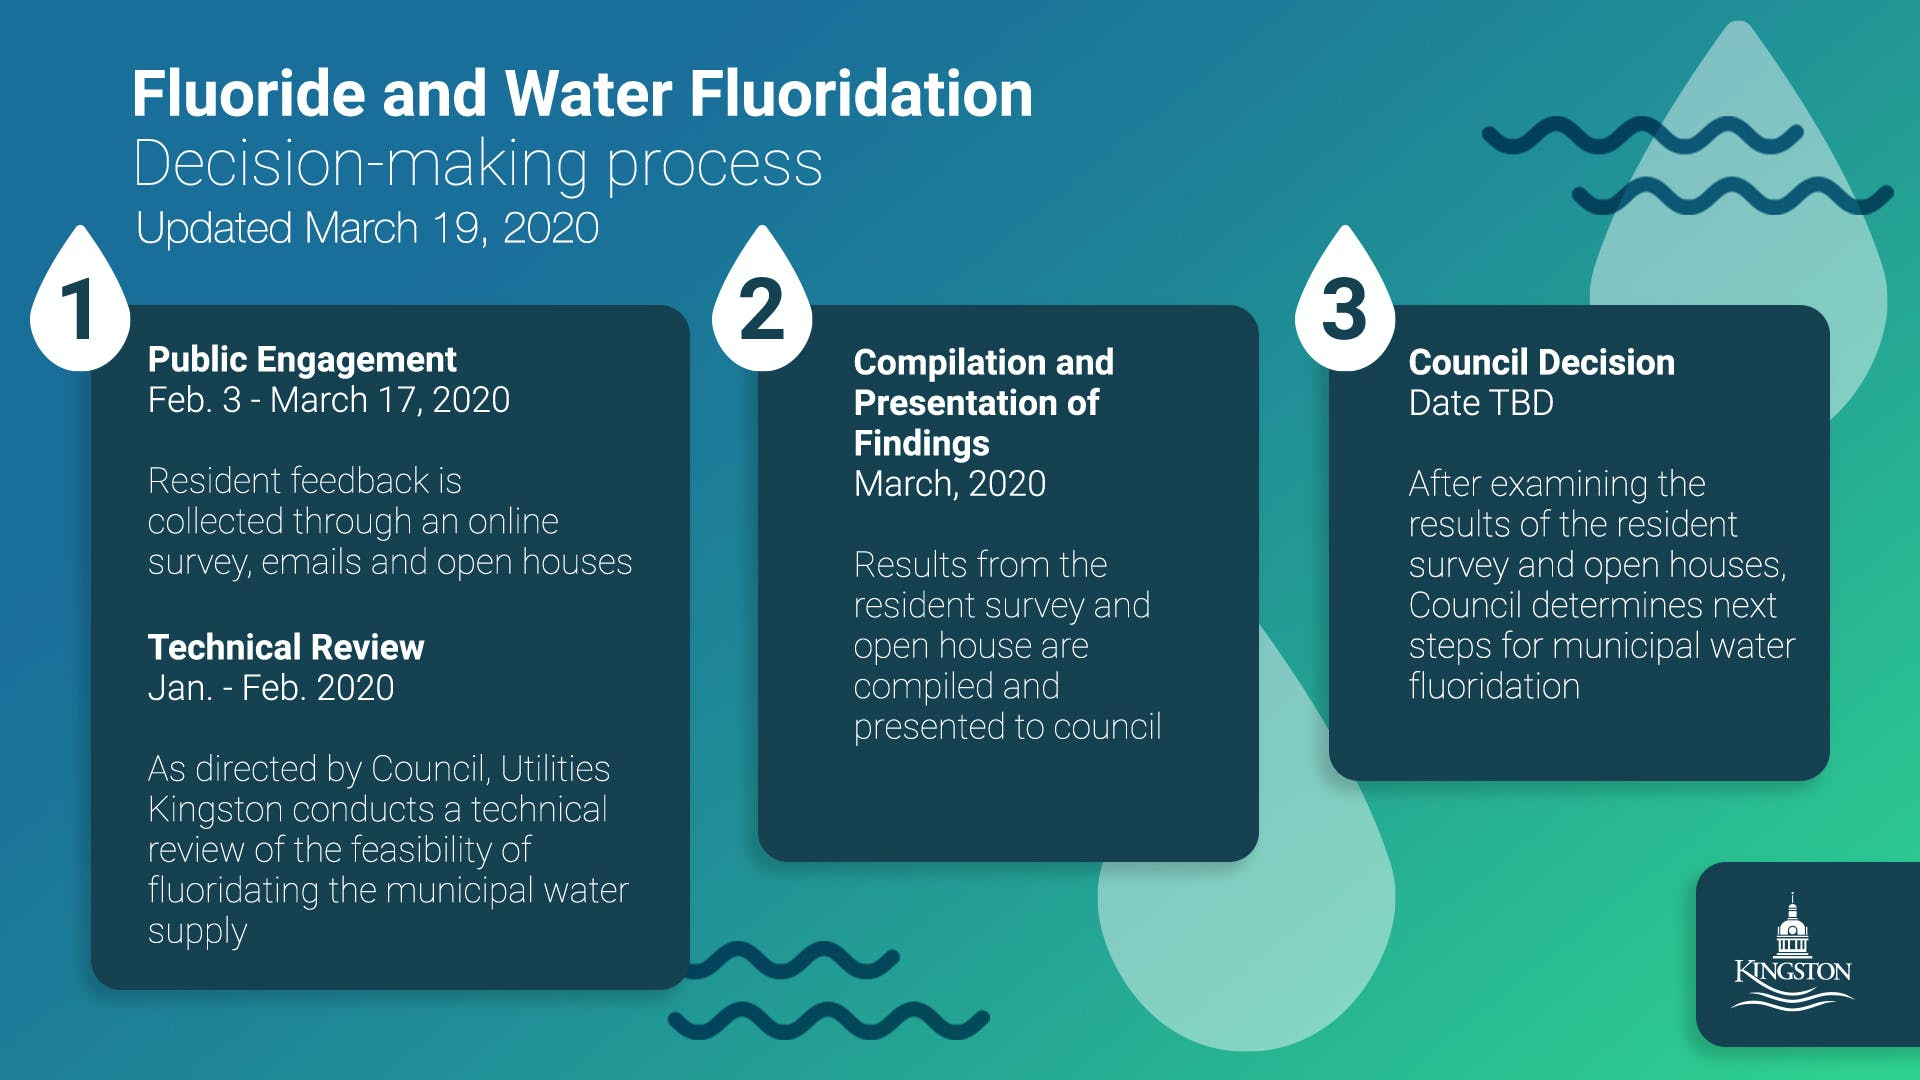 04-03-20-Fluoride-Decision-making-r3.jpg